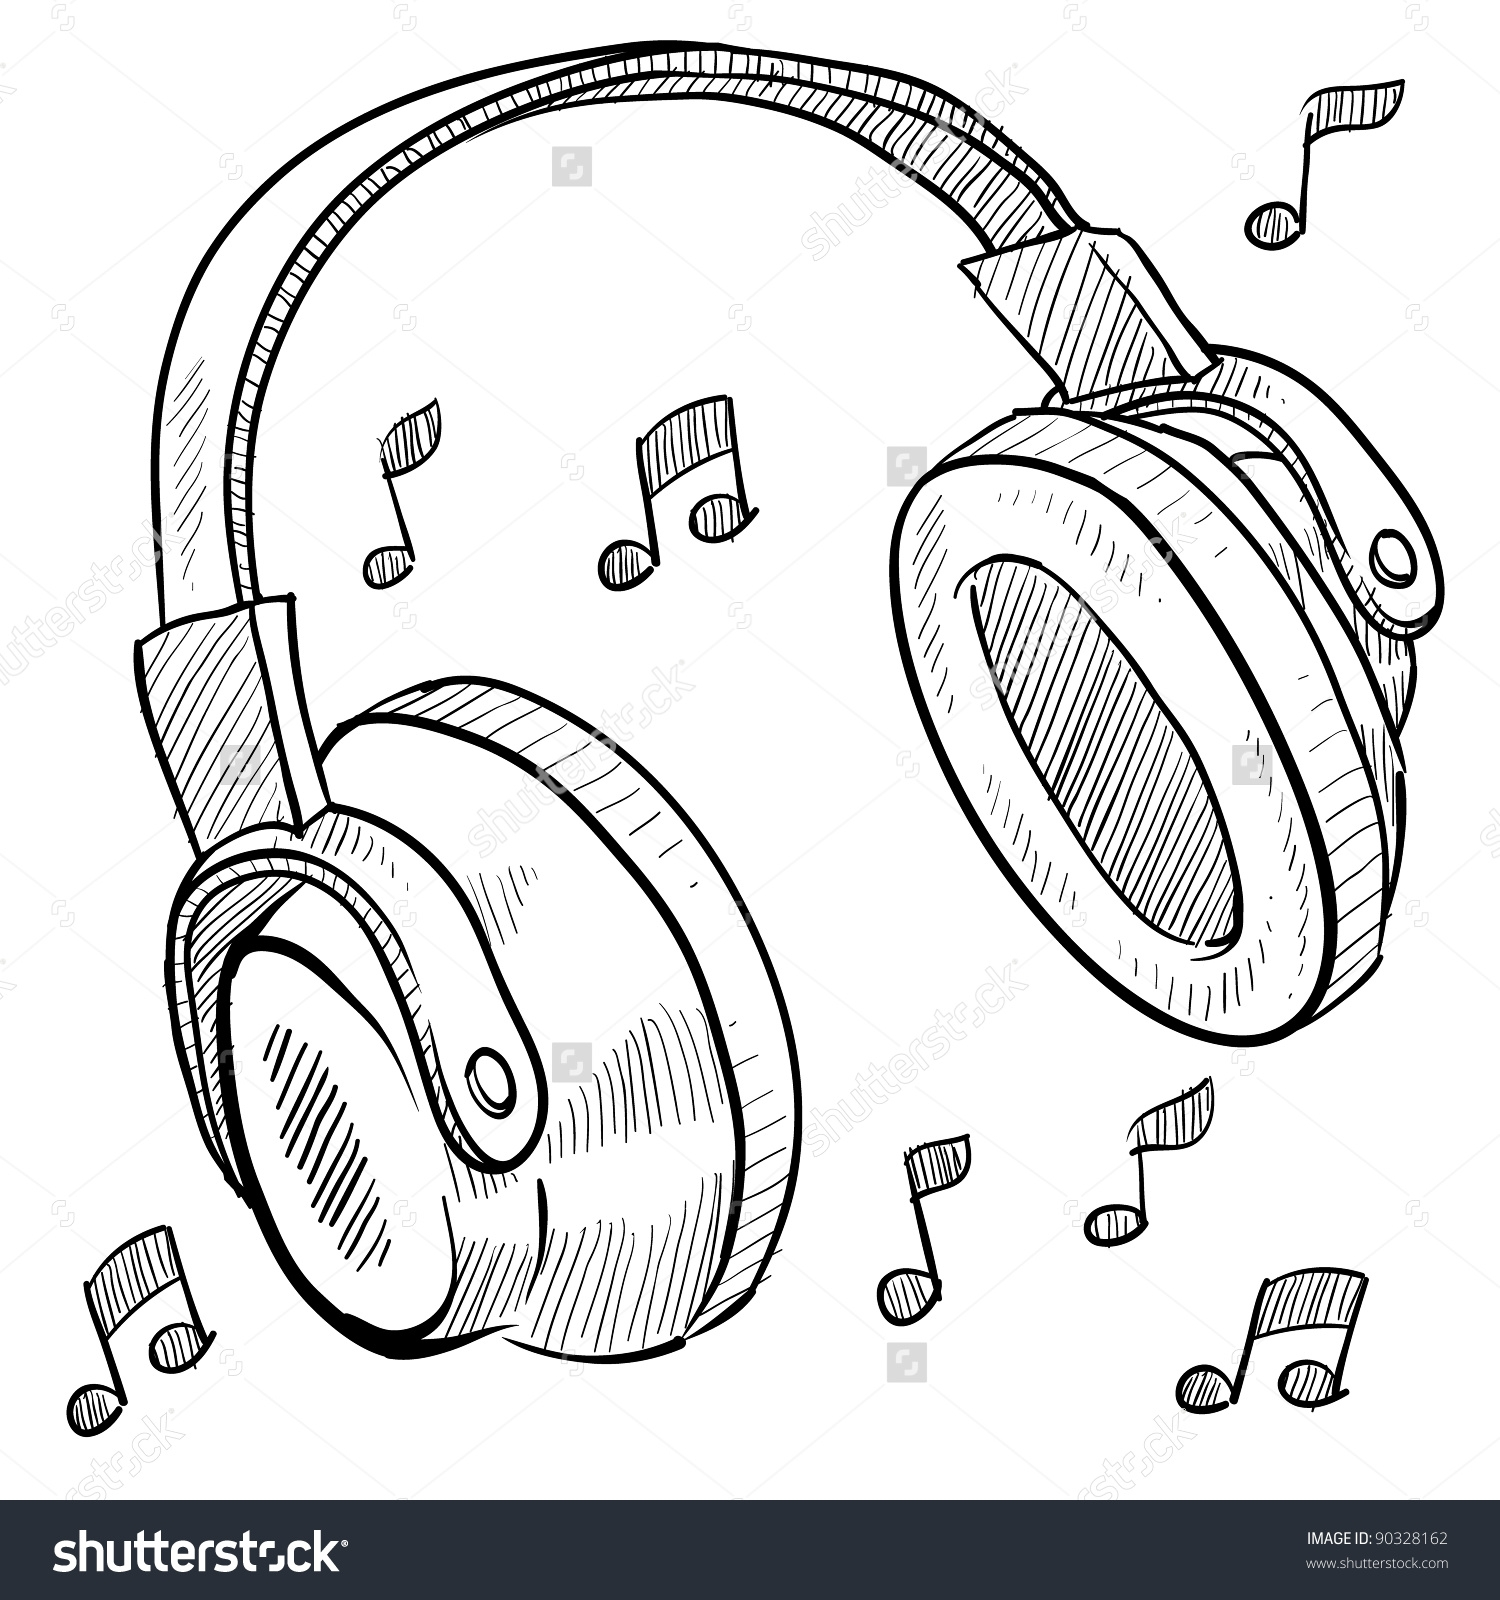 Clipart Headphones With Music Notes.